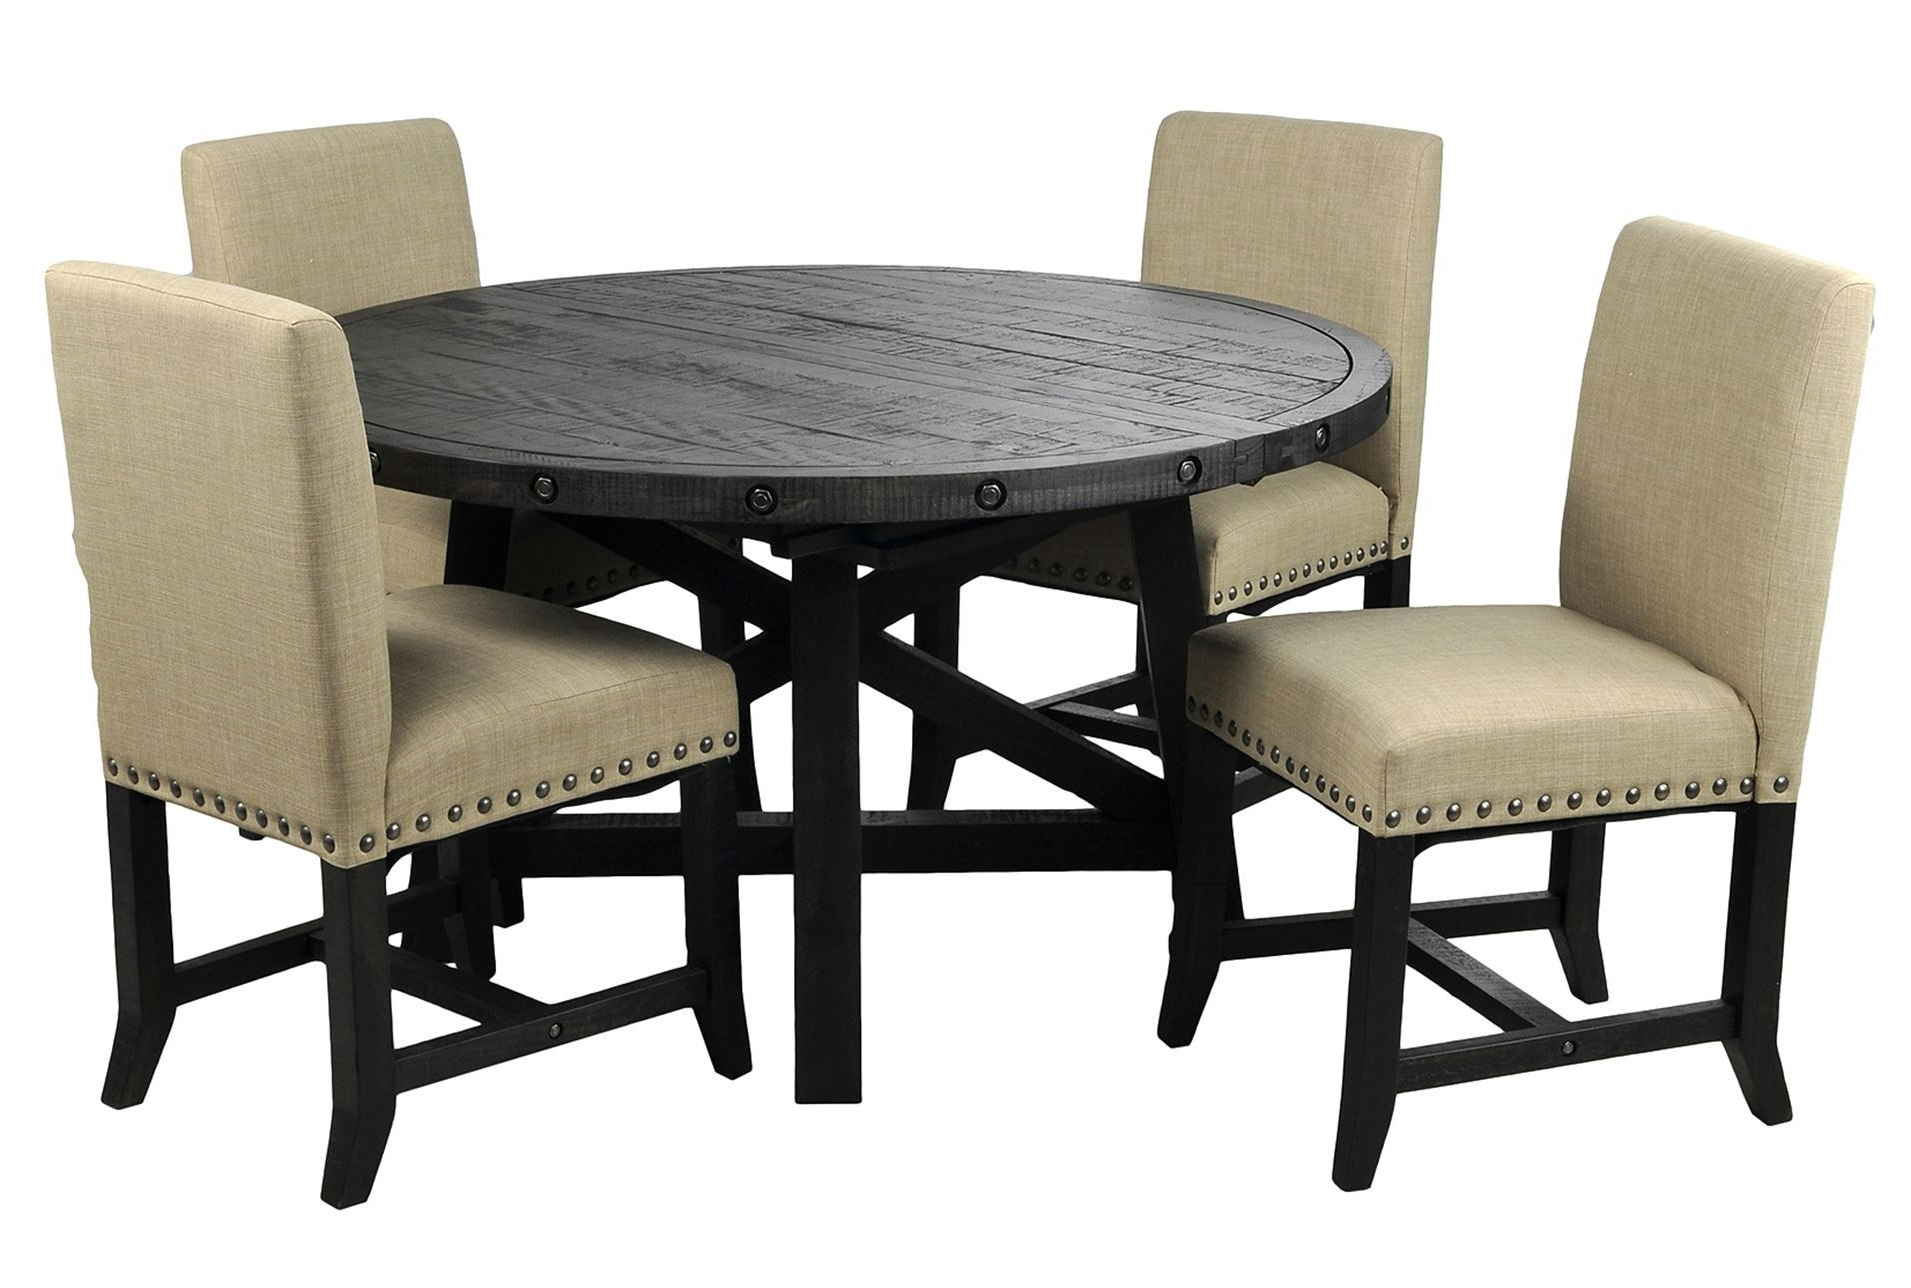 Preferred Jaxon 7 Piece Rectangle Dining Sets With Upholstered Chairs Regarding Jaxon 5 Piece Round Dining Set Wupholstered Chairs Dining Set With (View 5 of 25)